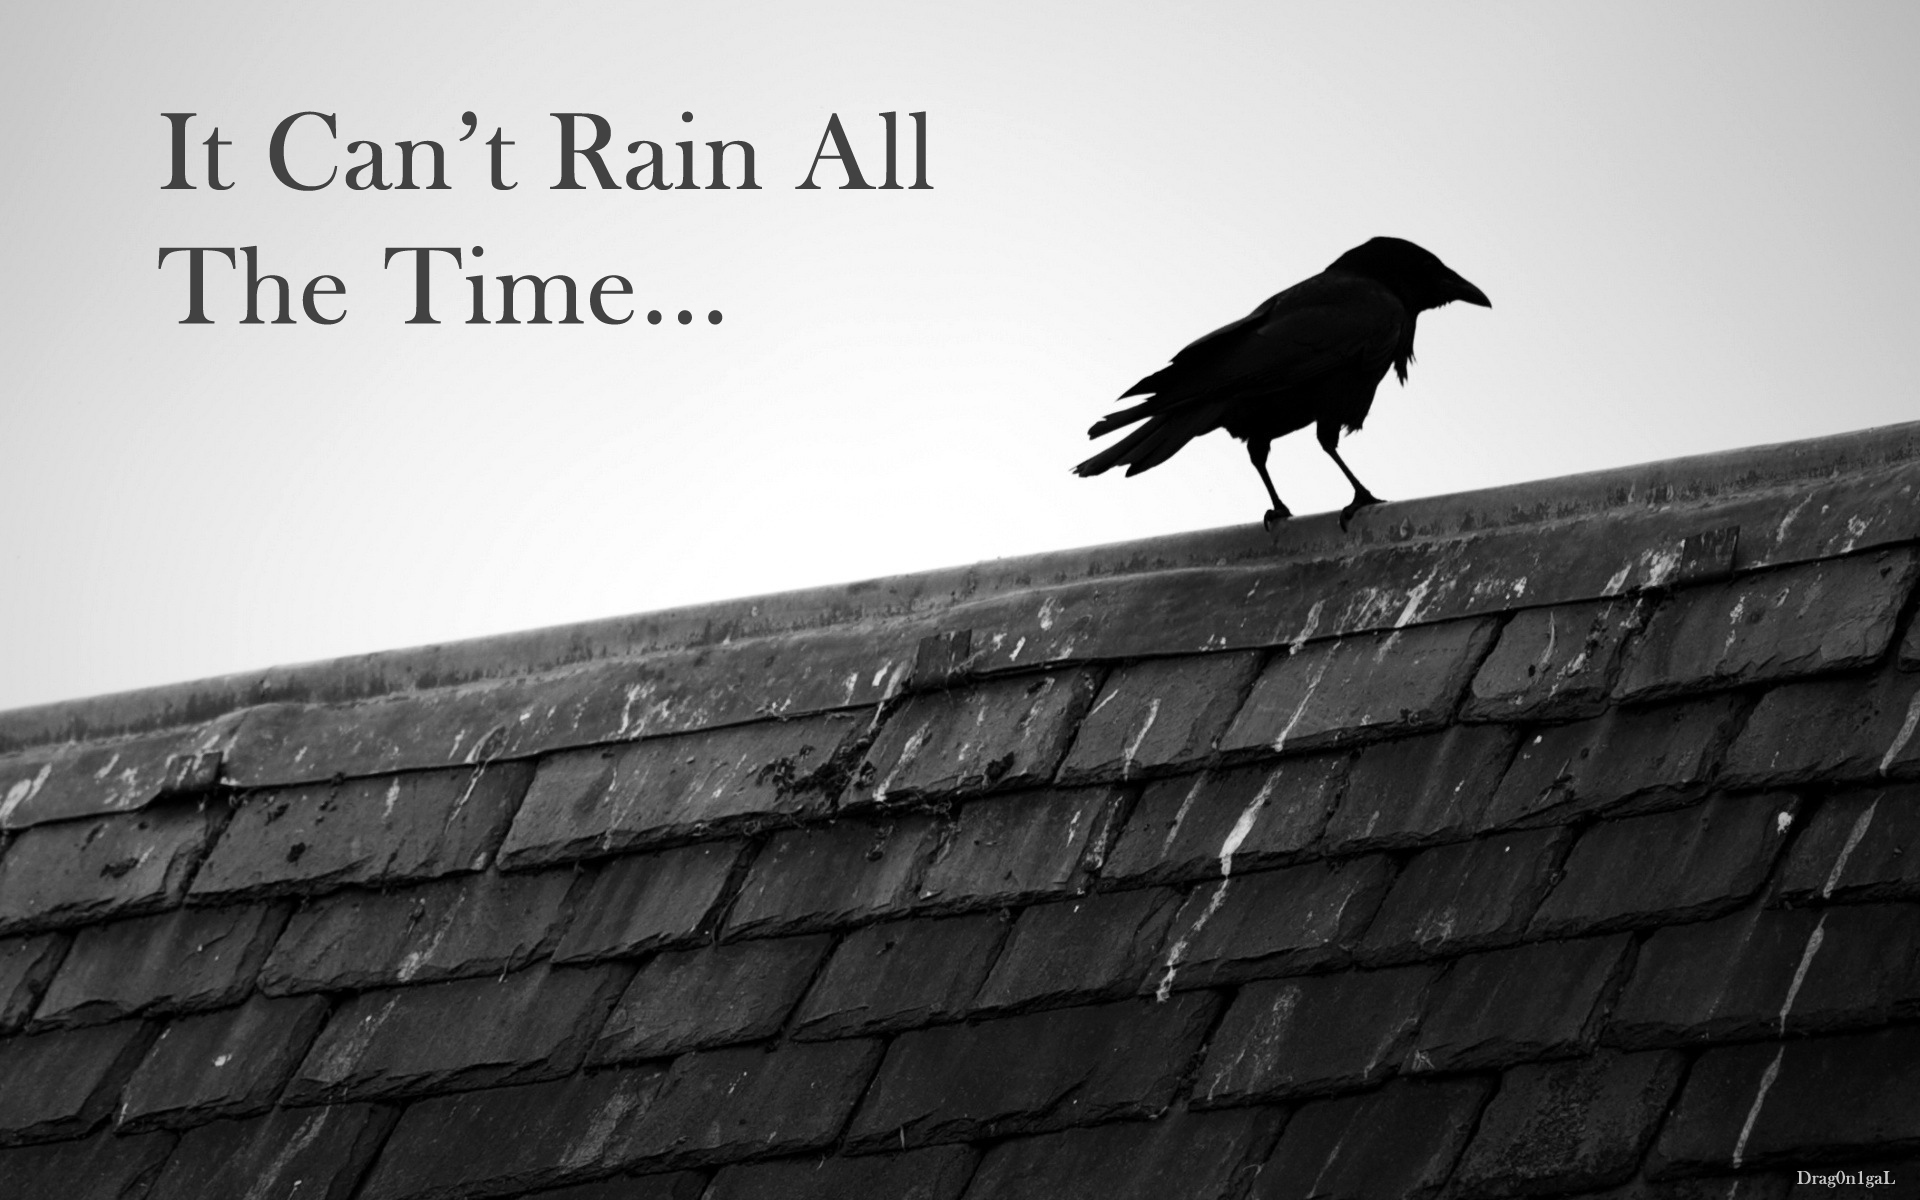 The crow Wallpaper - It Can't Rain All The Time Computer ...